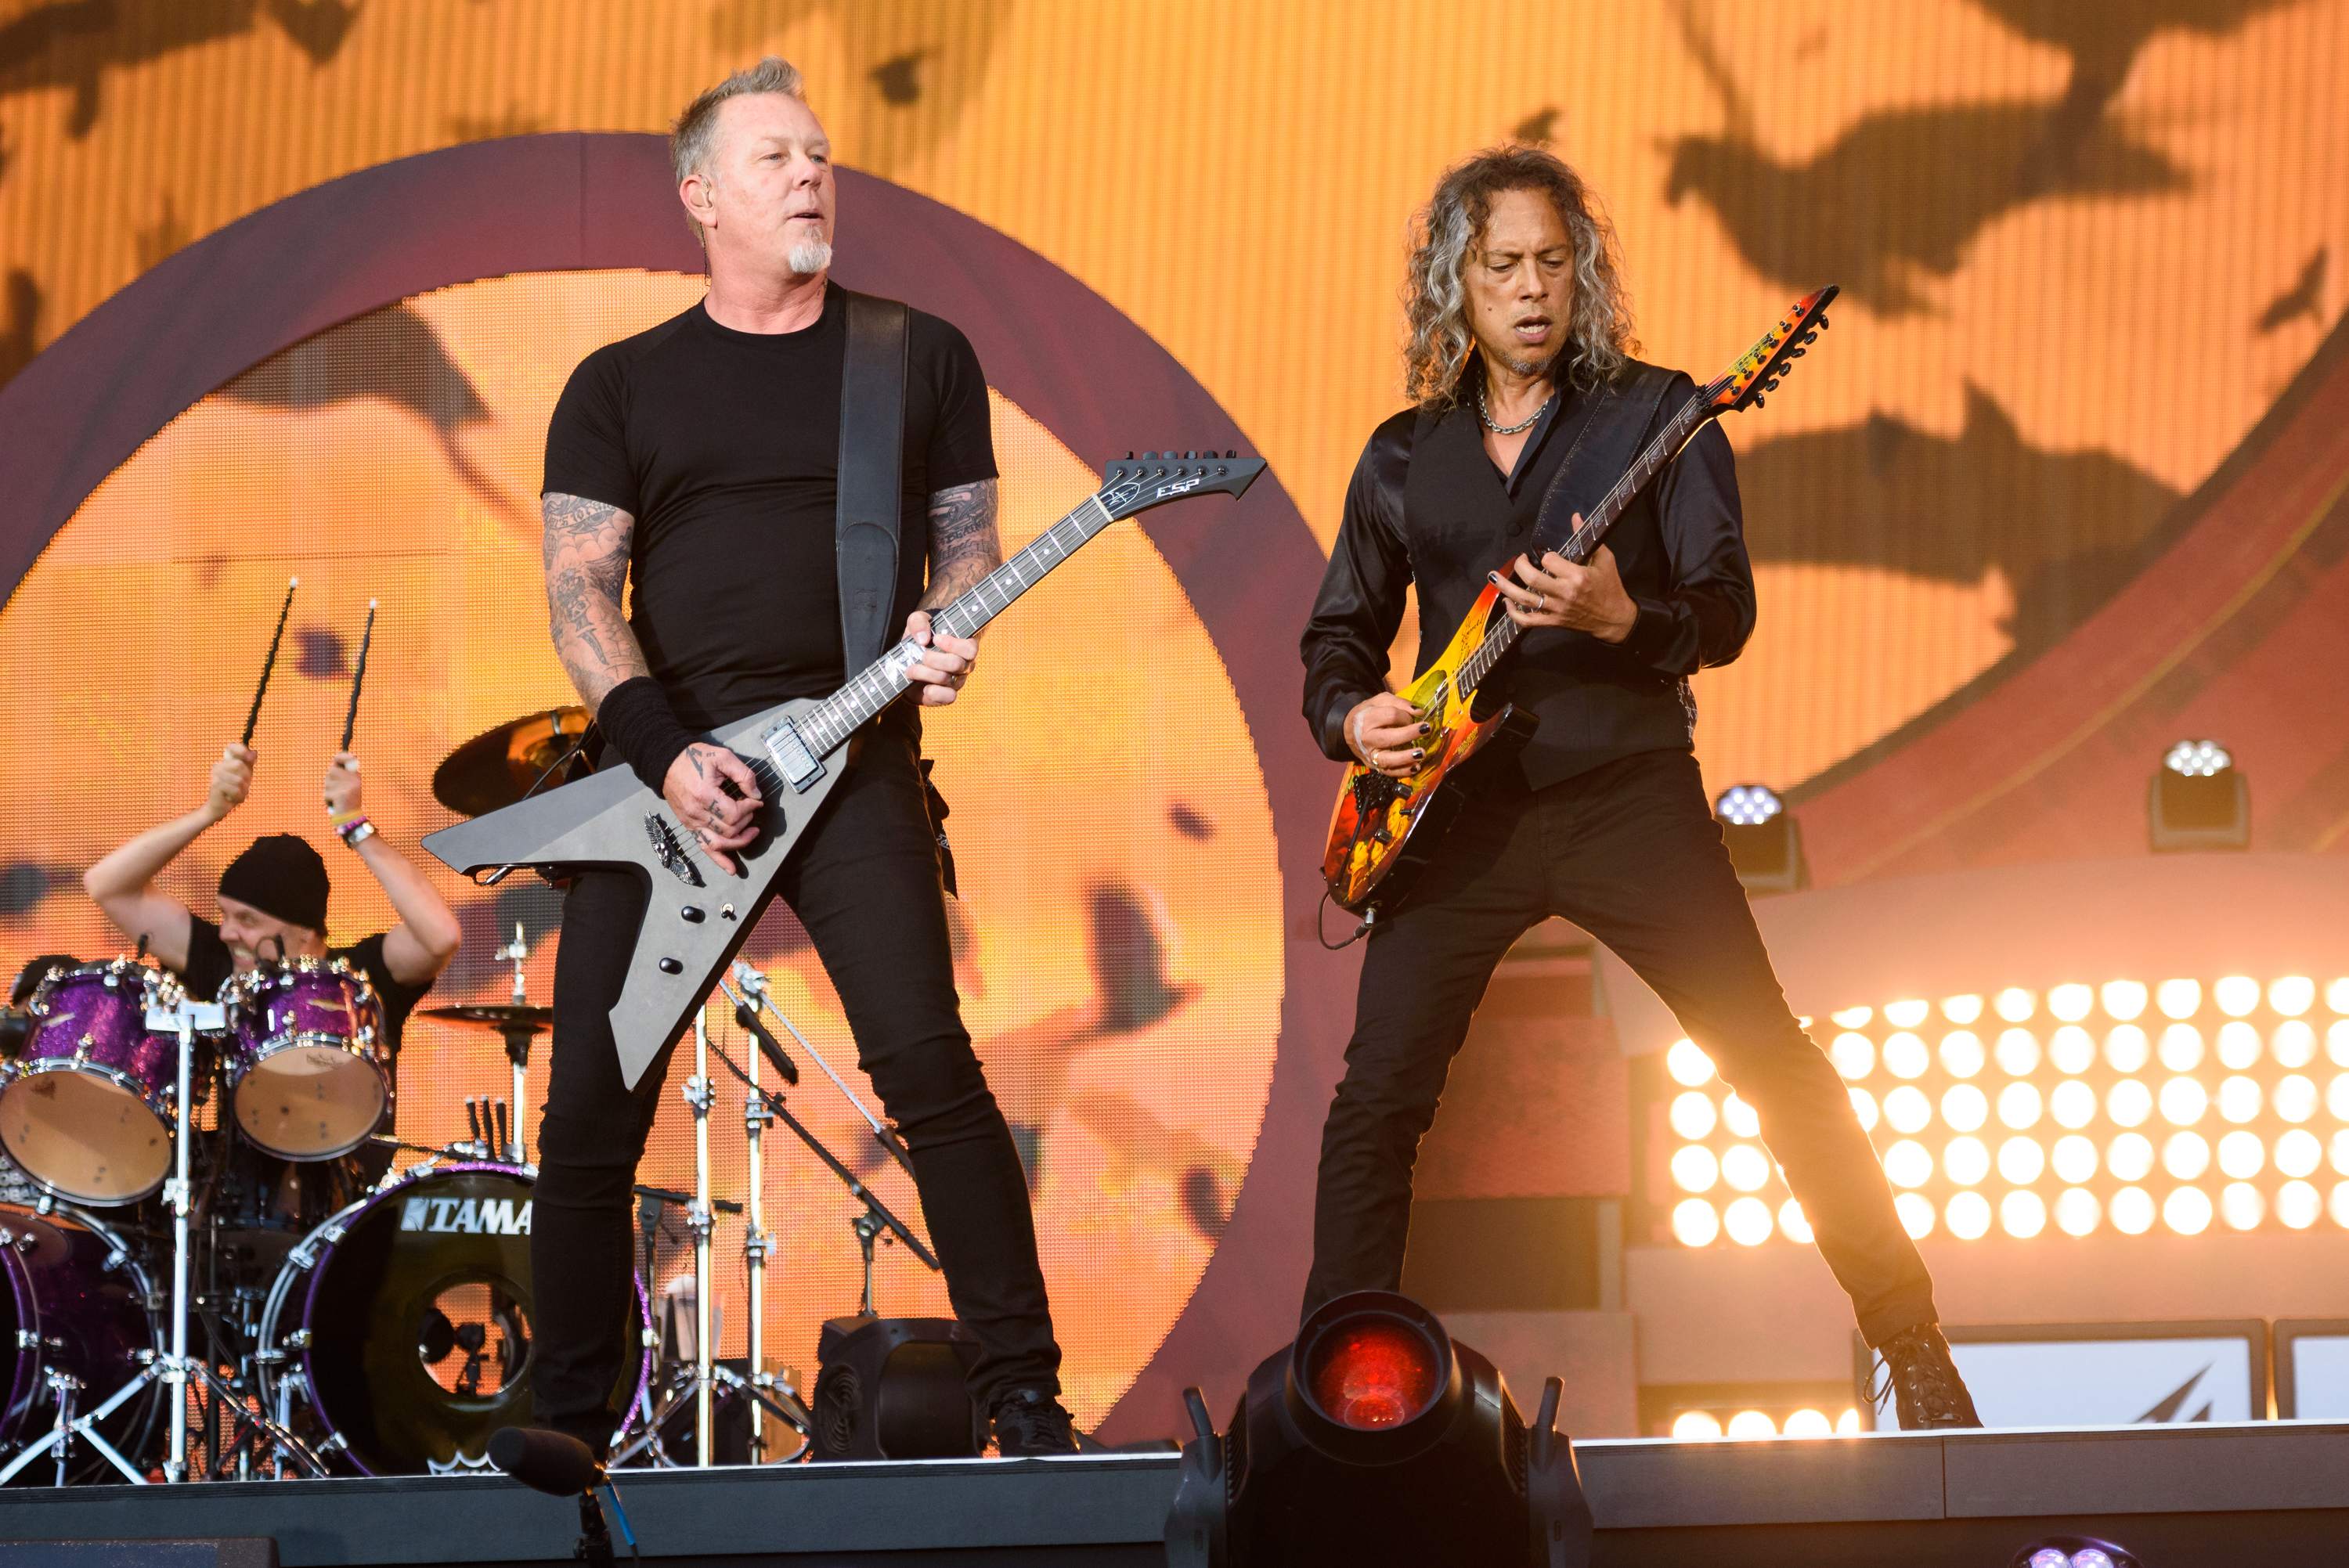 NEW YORK, NY - SEPTEMBER 24:  James Hetfield (L) and Kirk Hammett of the band Metallica perform live on stage during Global C